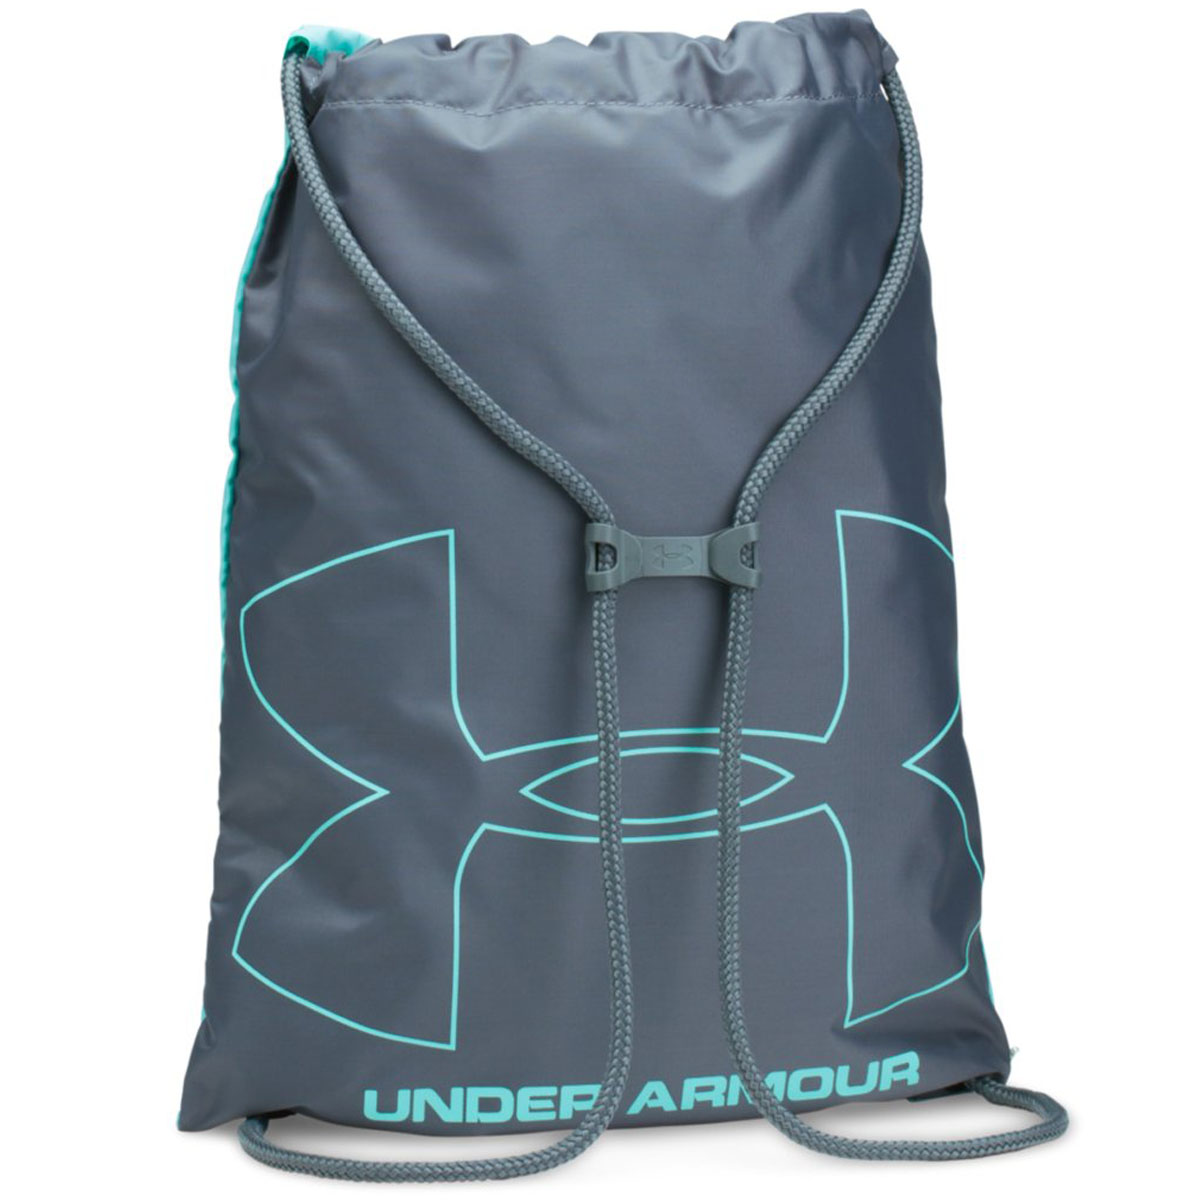 Under Armour 2019 UA Ozsee Sackpack Drawstring Bag Gym School ... 63fc8bcef9